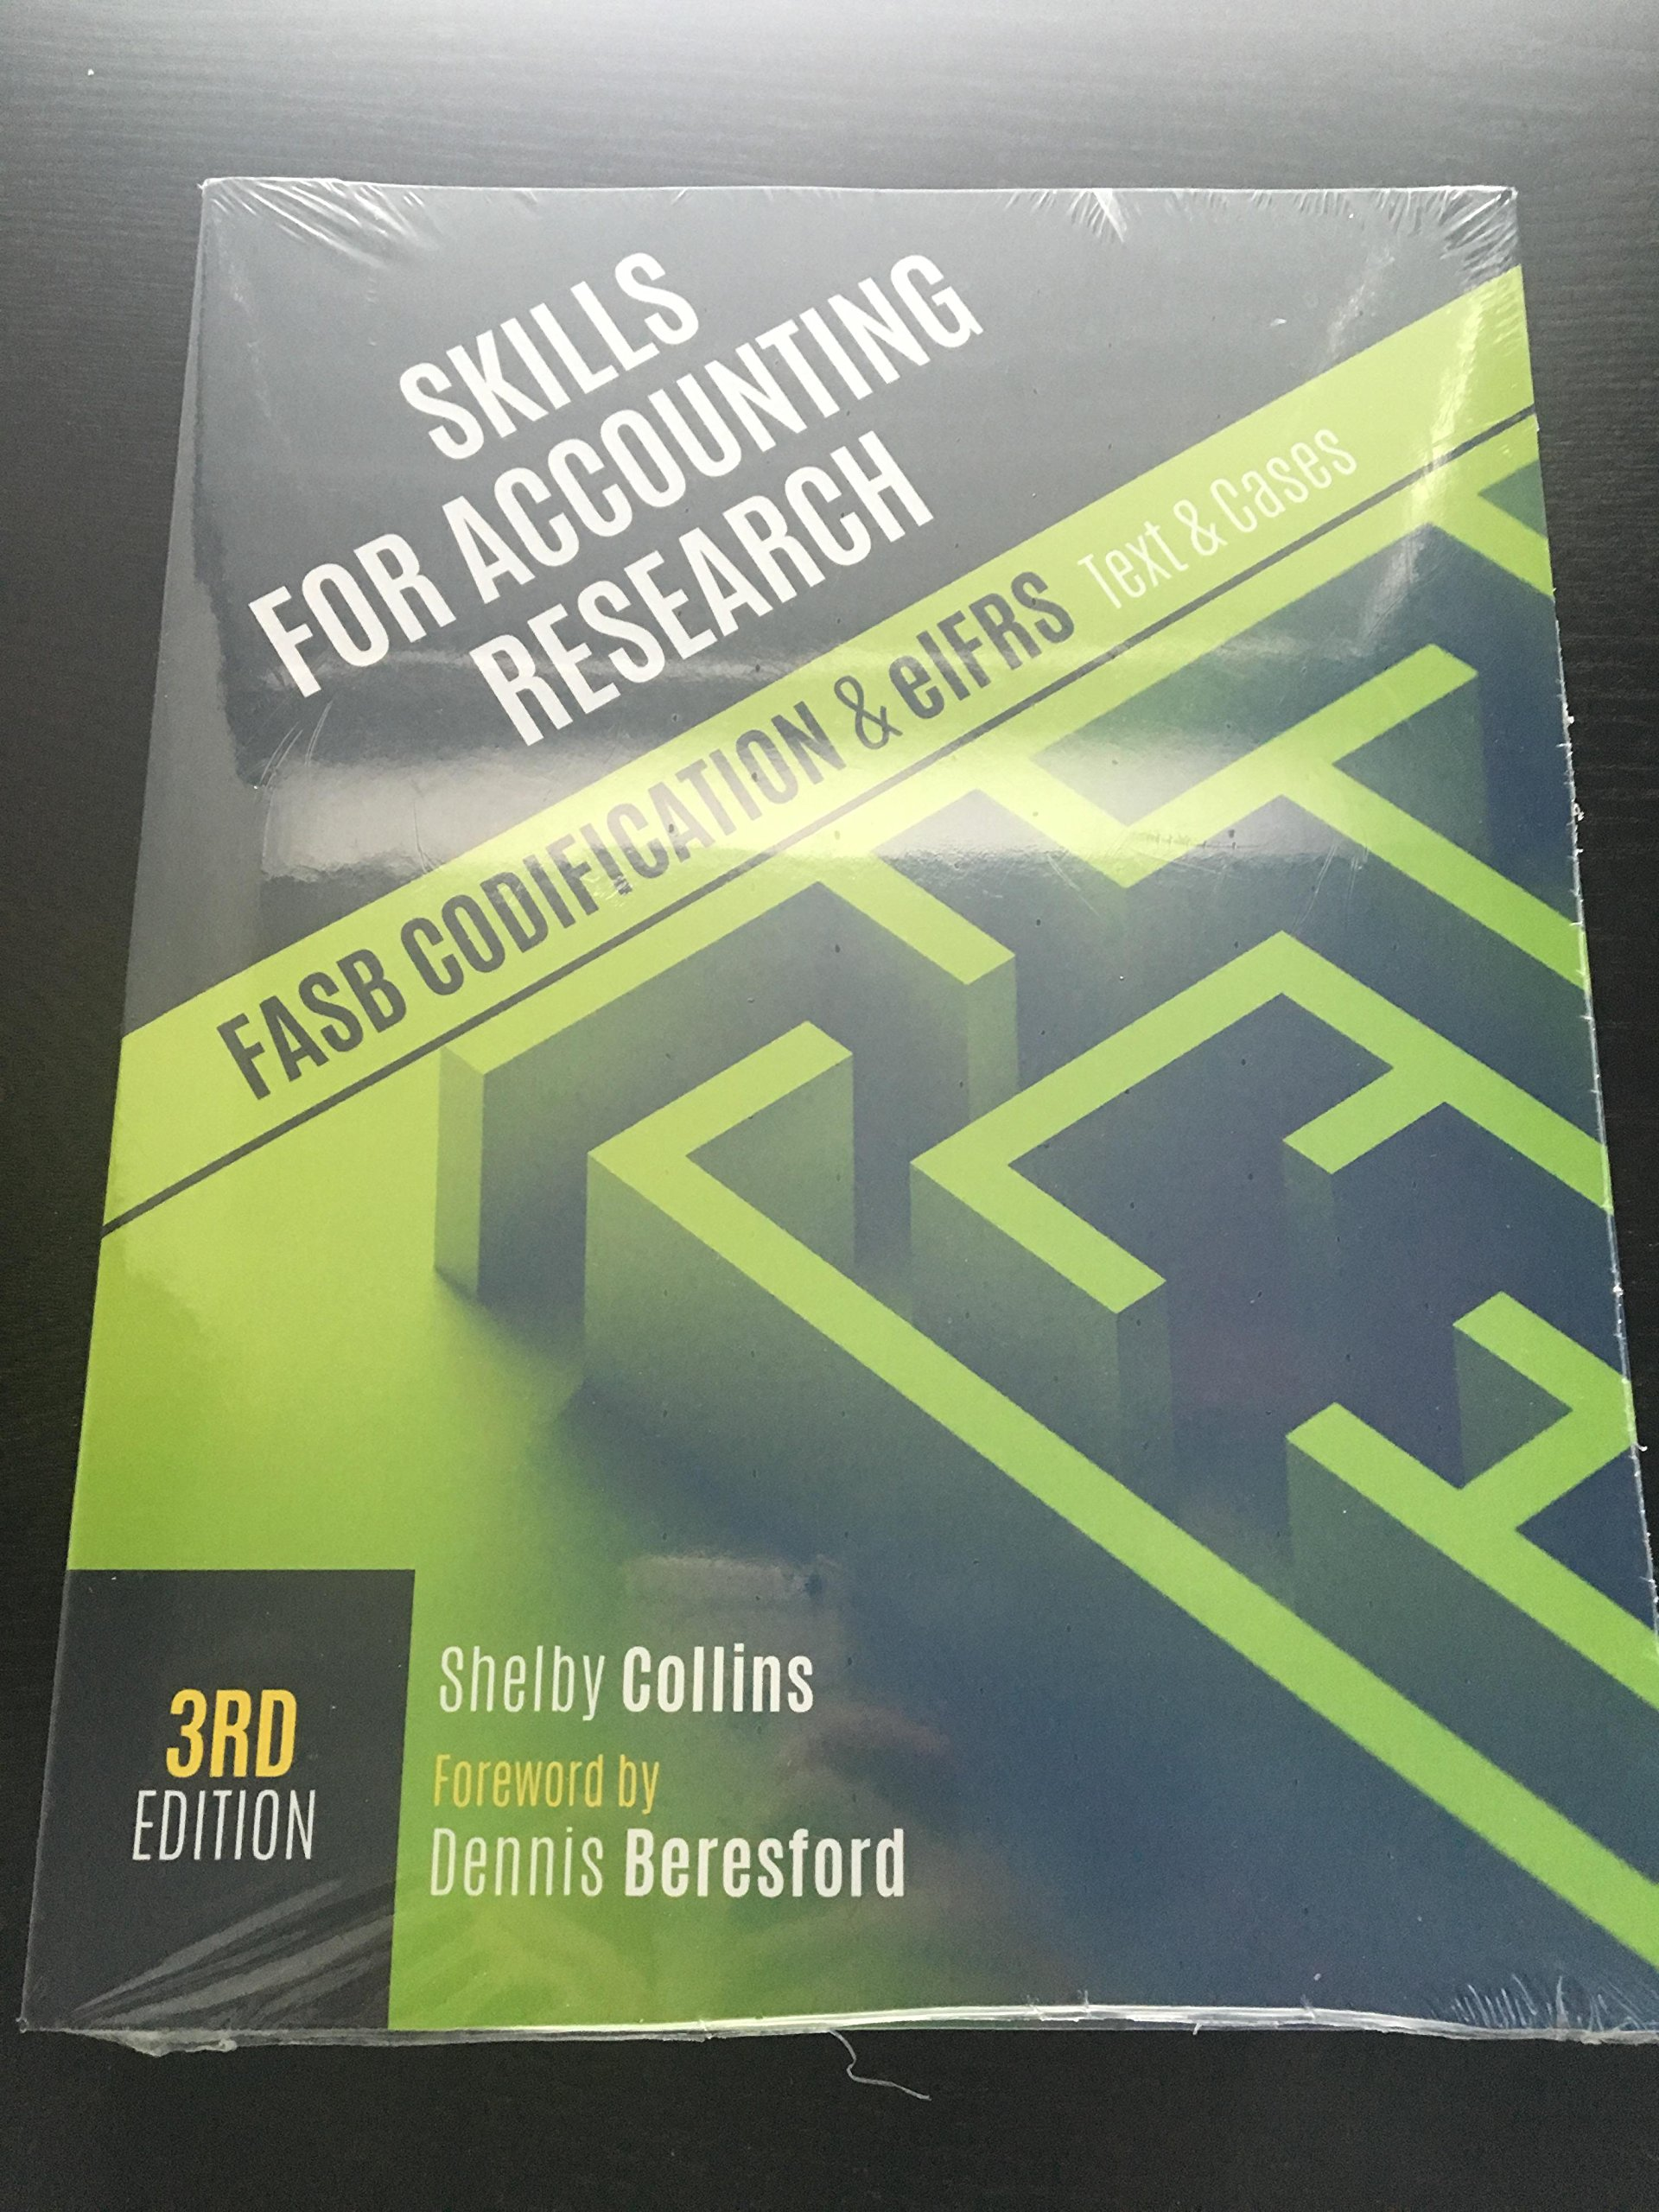 Skills faccountingauditing research shelby collins 9781618531773 skills faccountingauditing research shelby collins 9781618531773 amazon books fandeluxe Image collections